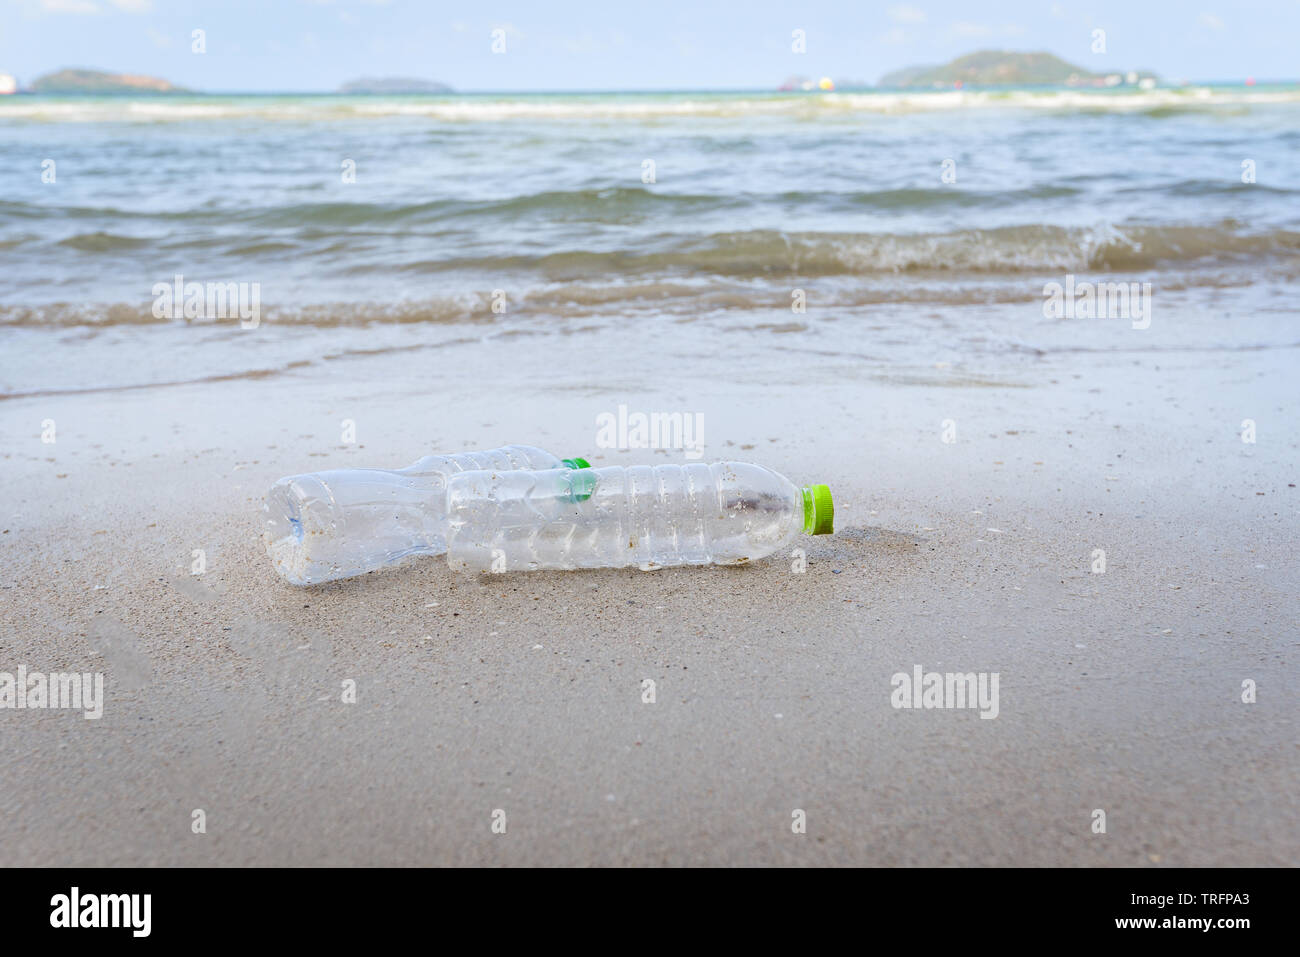 Garbage in the sea with plastic bottle on beach sandy dirty sea on the island / Environmental problem of plastic rubbish pollution in ocean - Stock Image